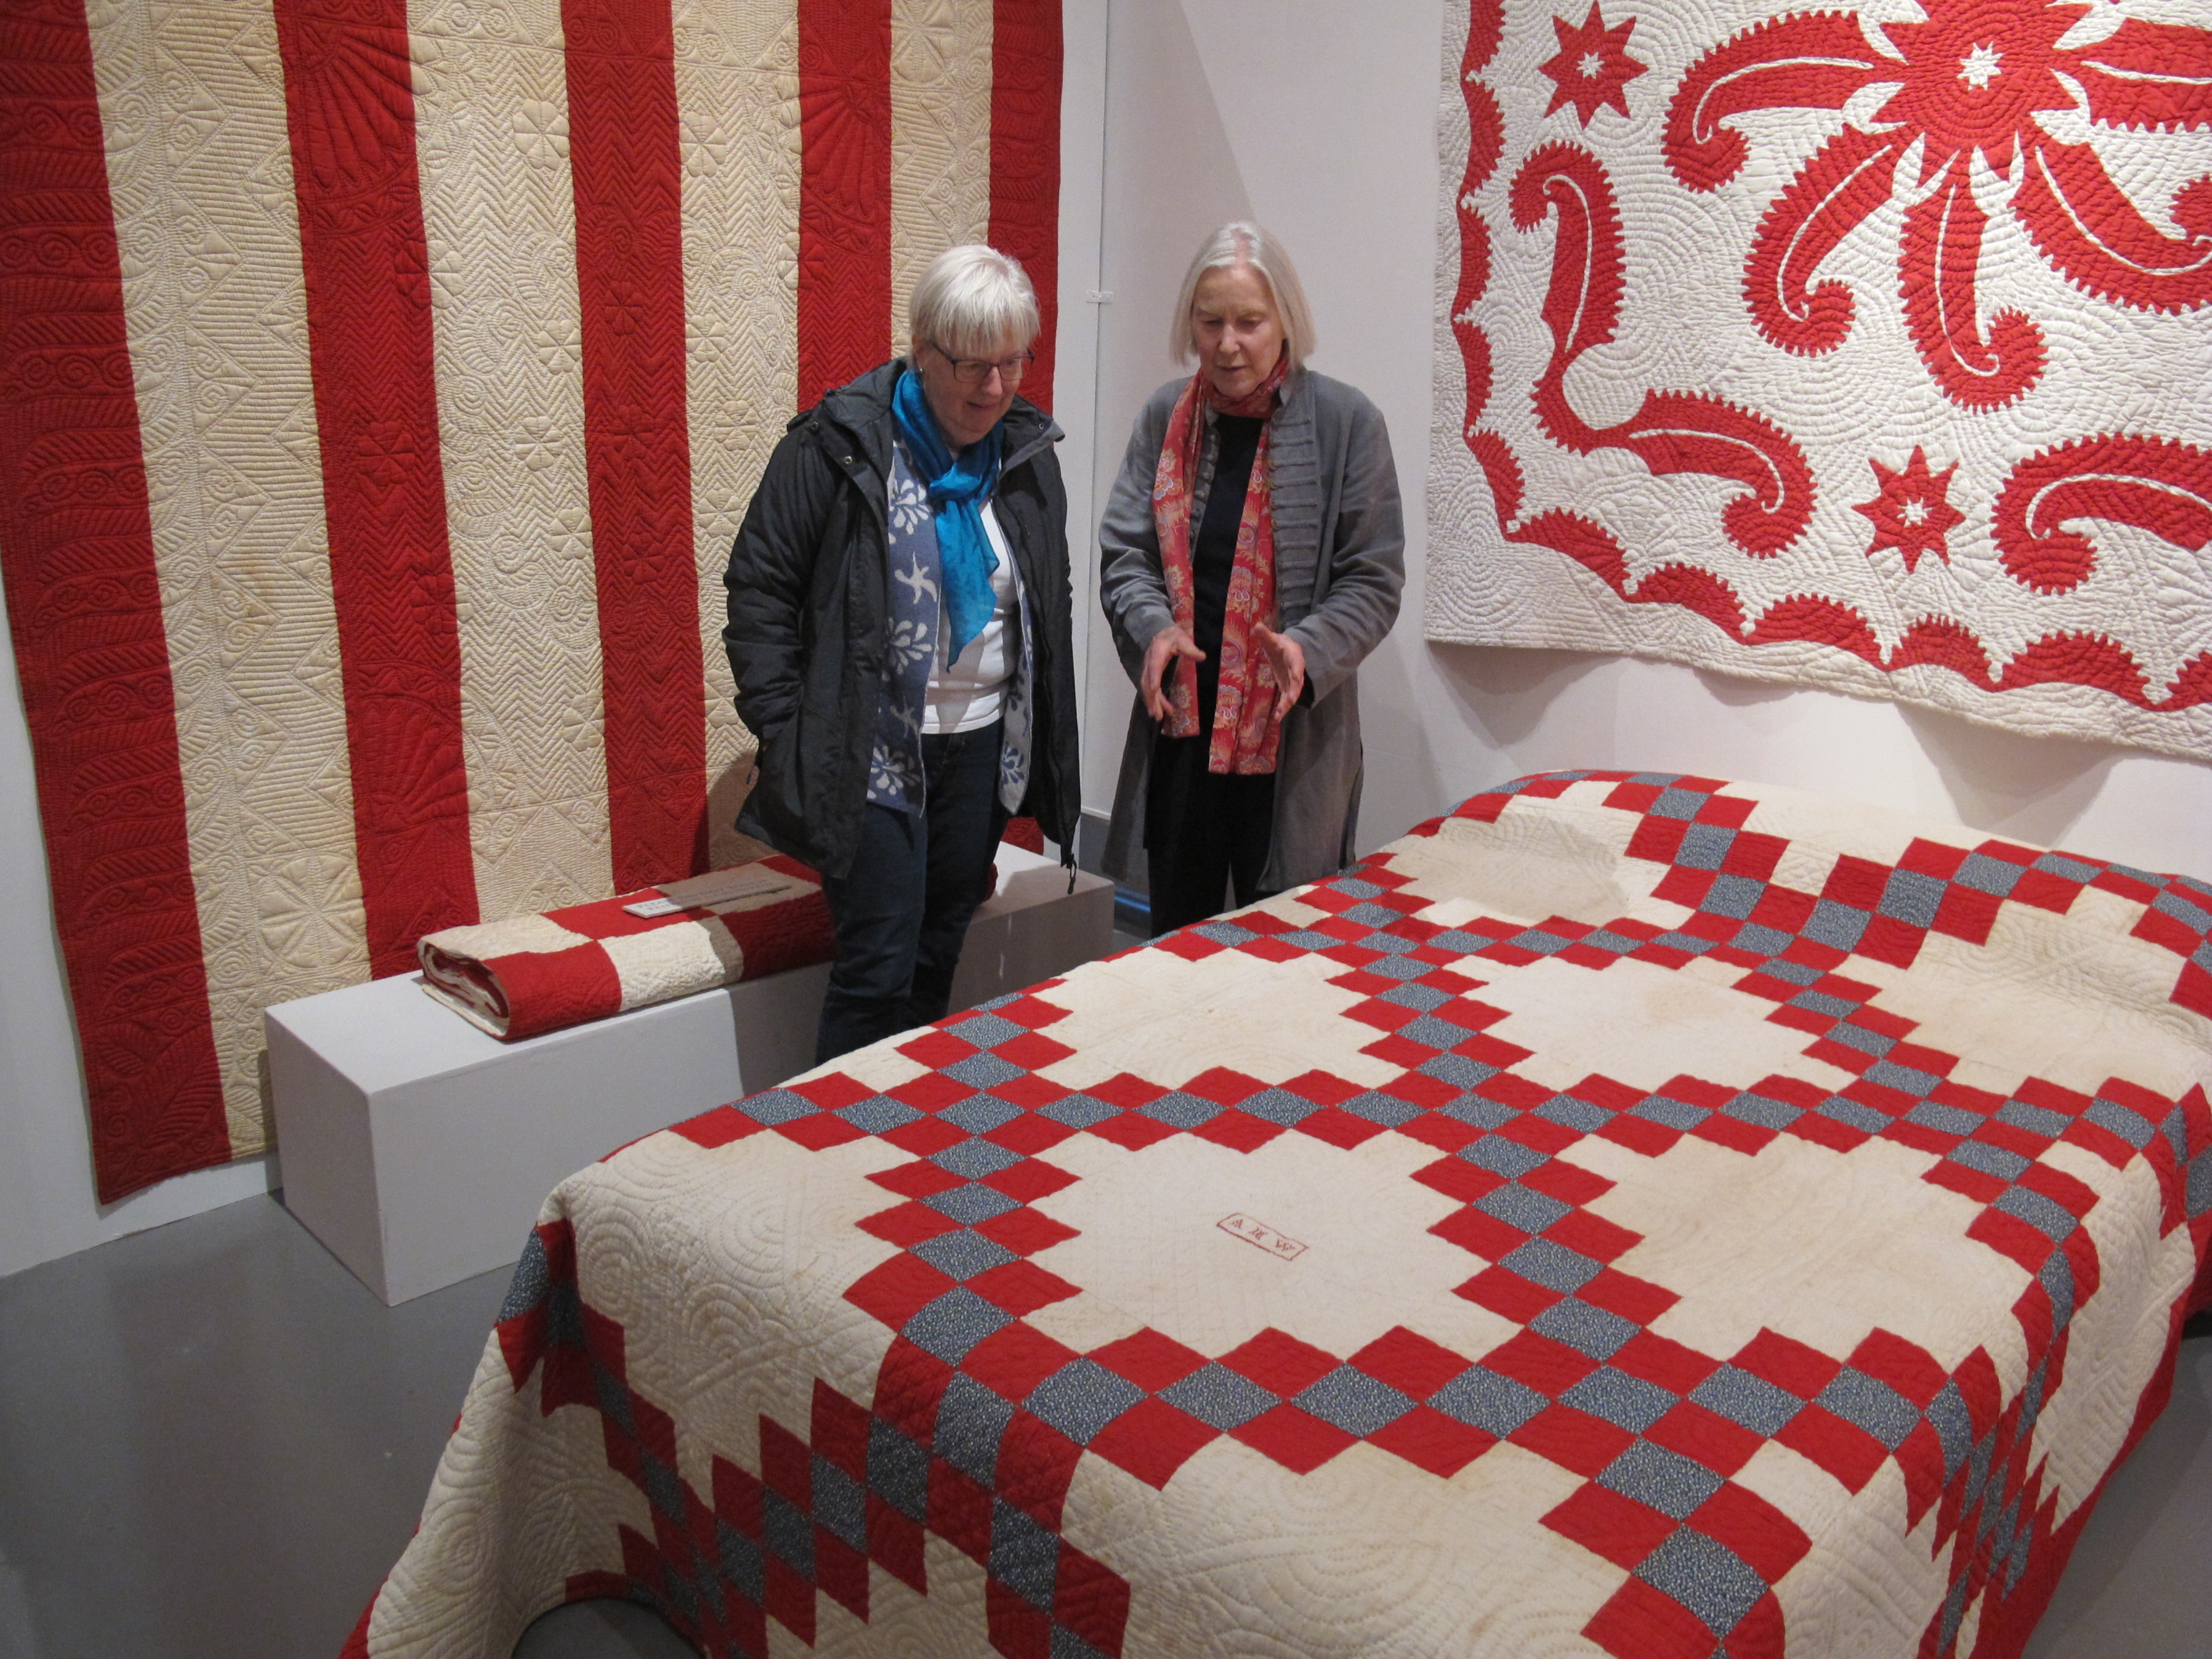 Jen Jones talking to local tourist about quilt on display